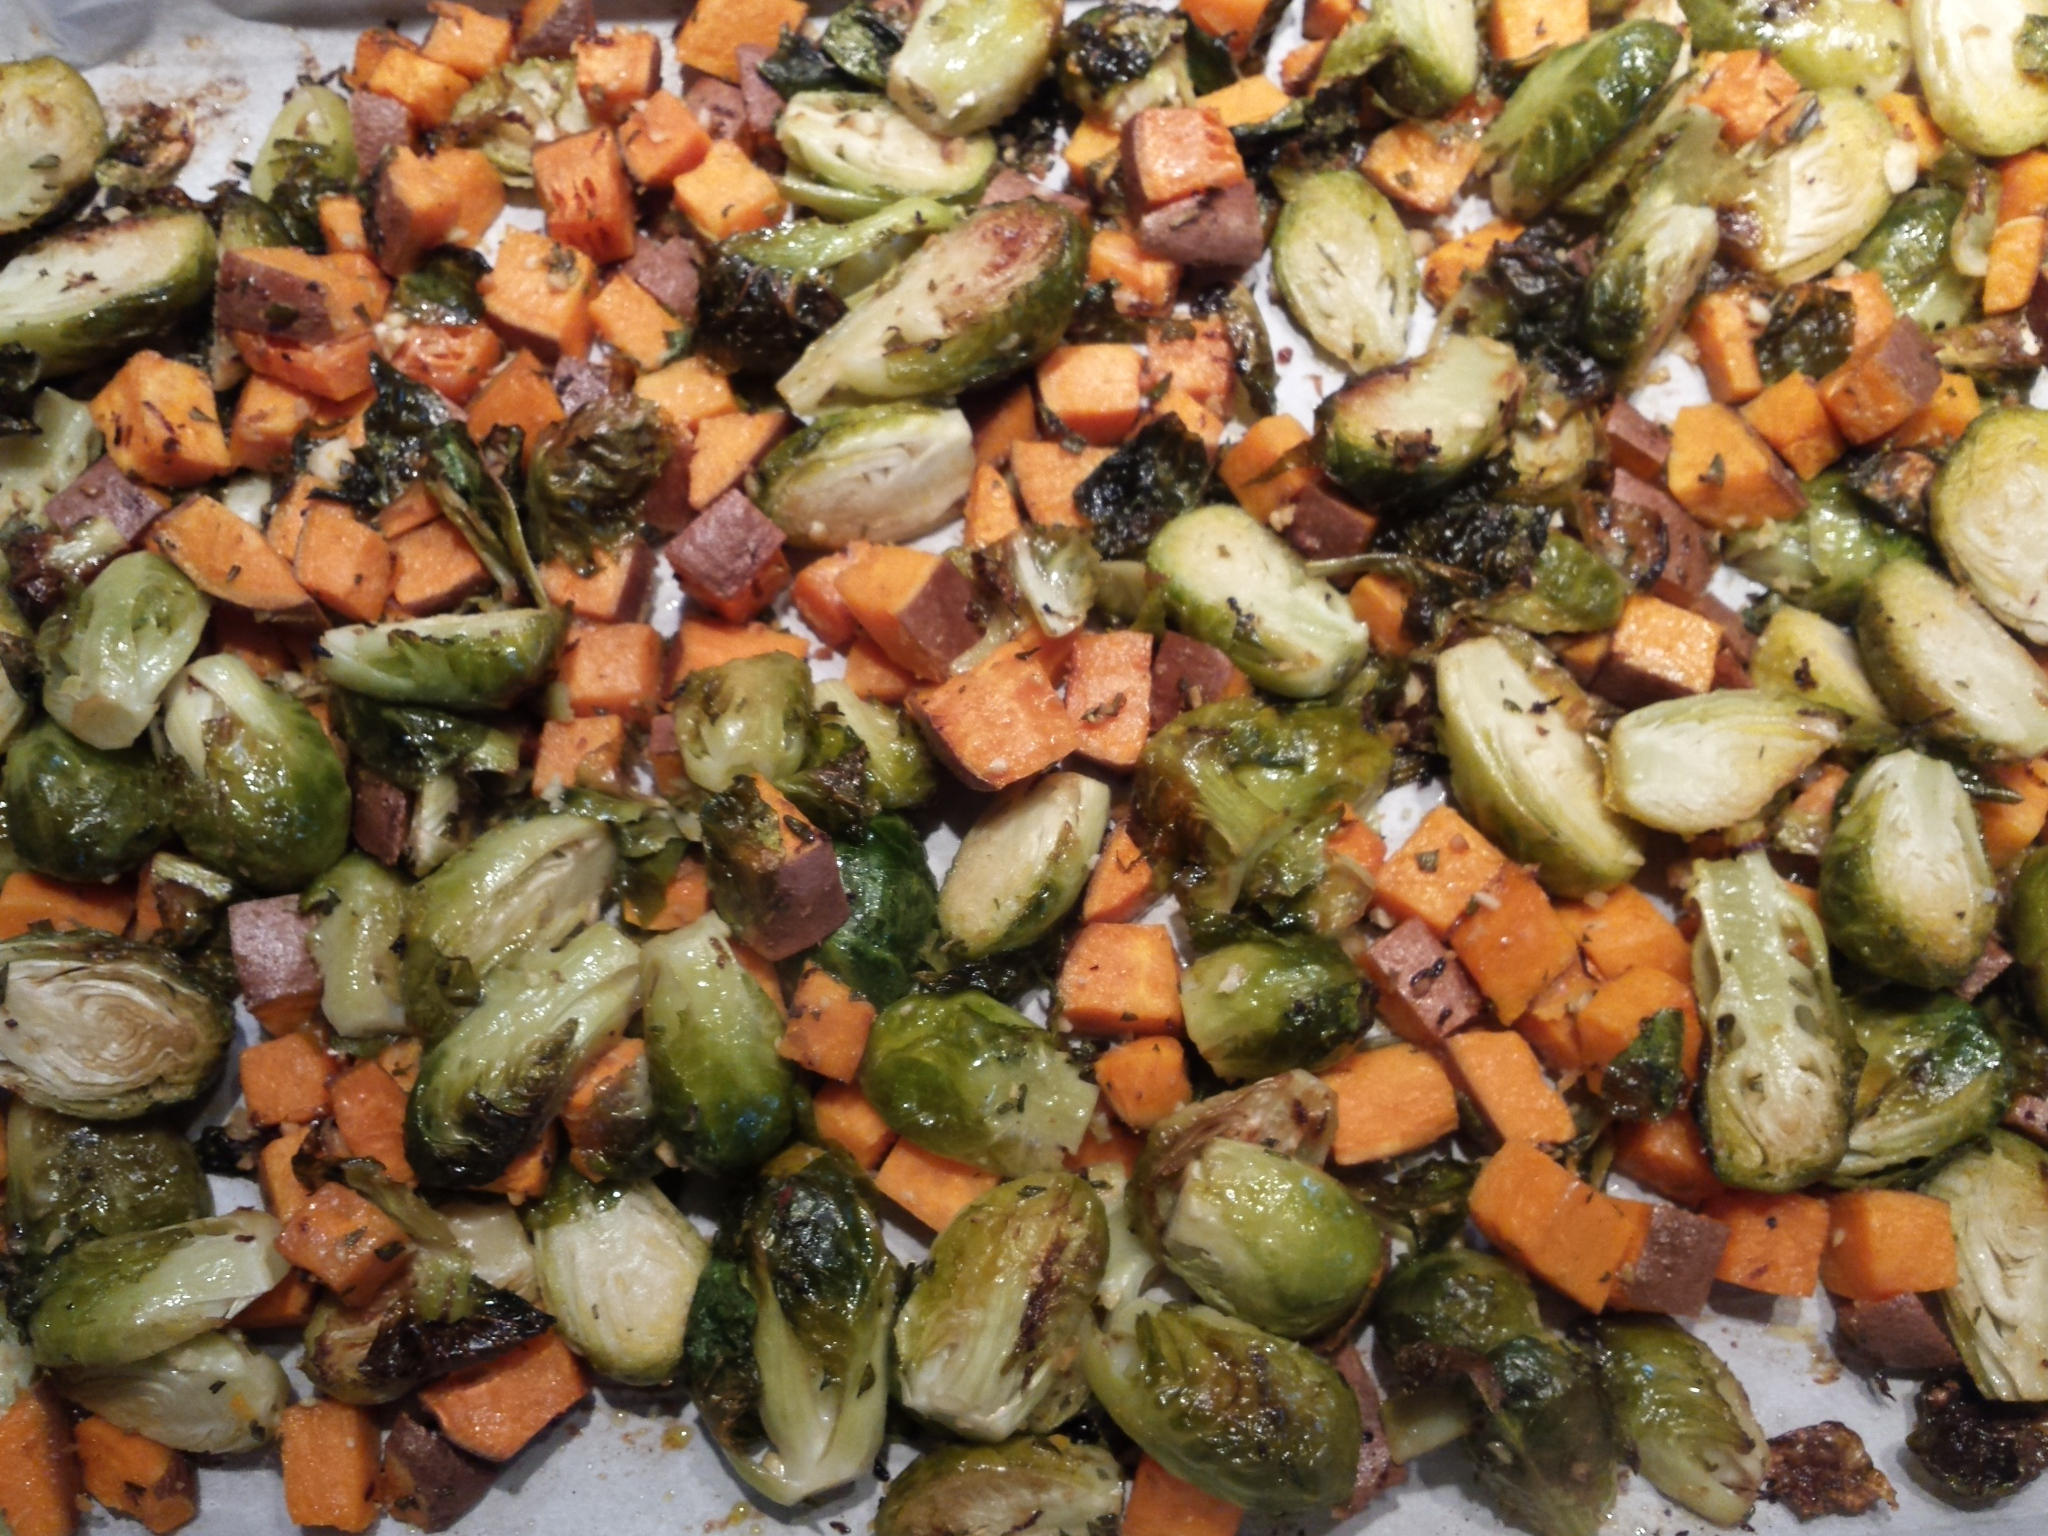 Roasted Brussel Sprouts (w Yams)